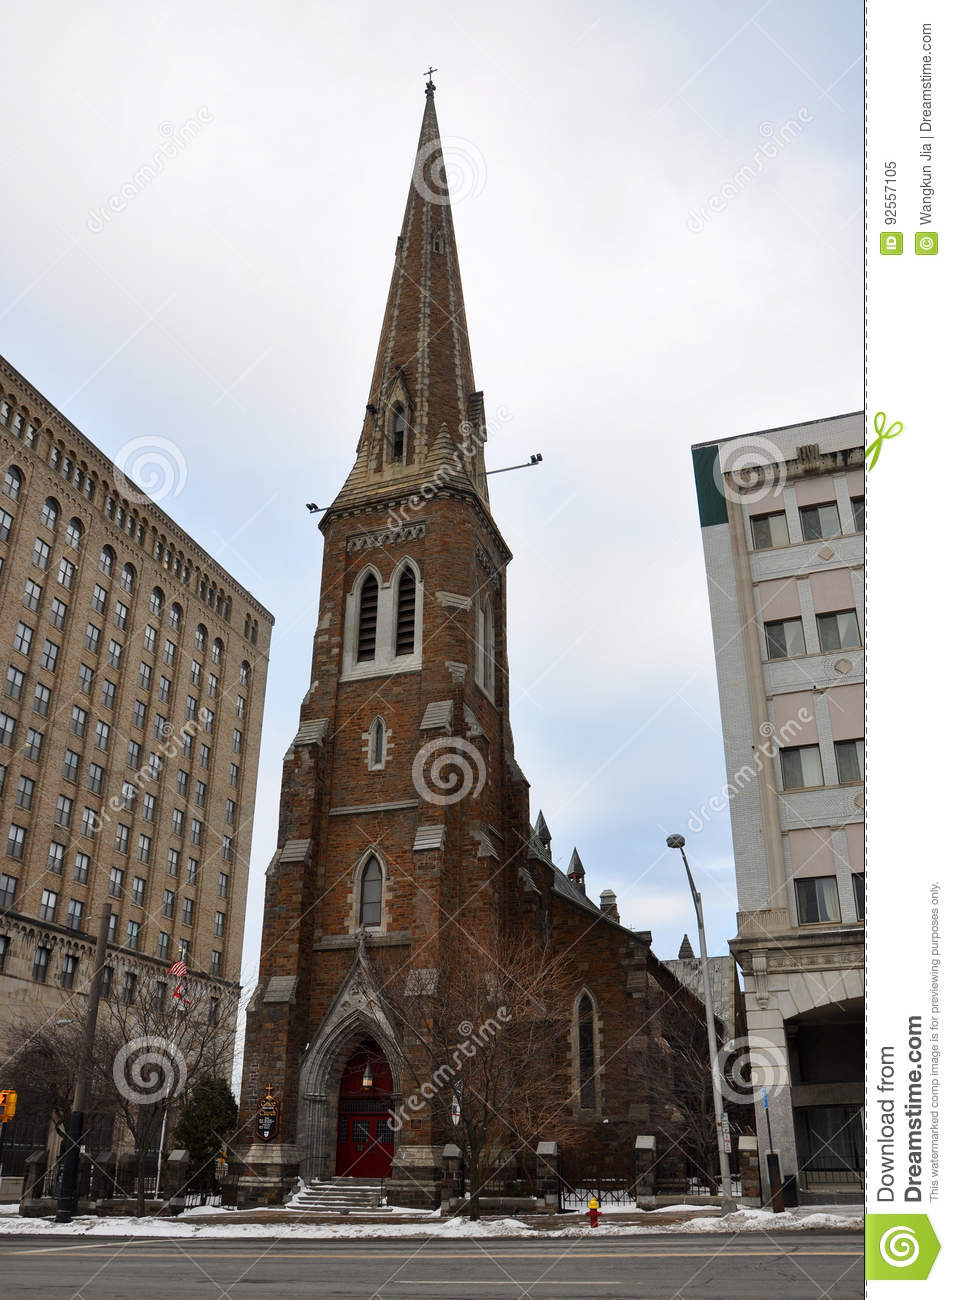 Grace Church, Stato di New York di Utica, U.S.A.